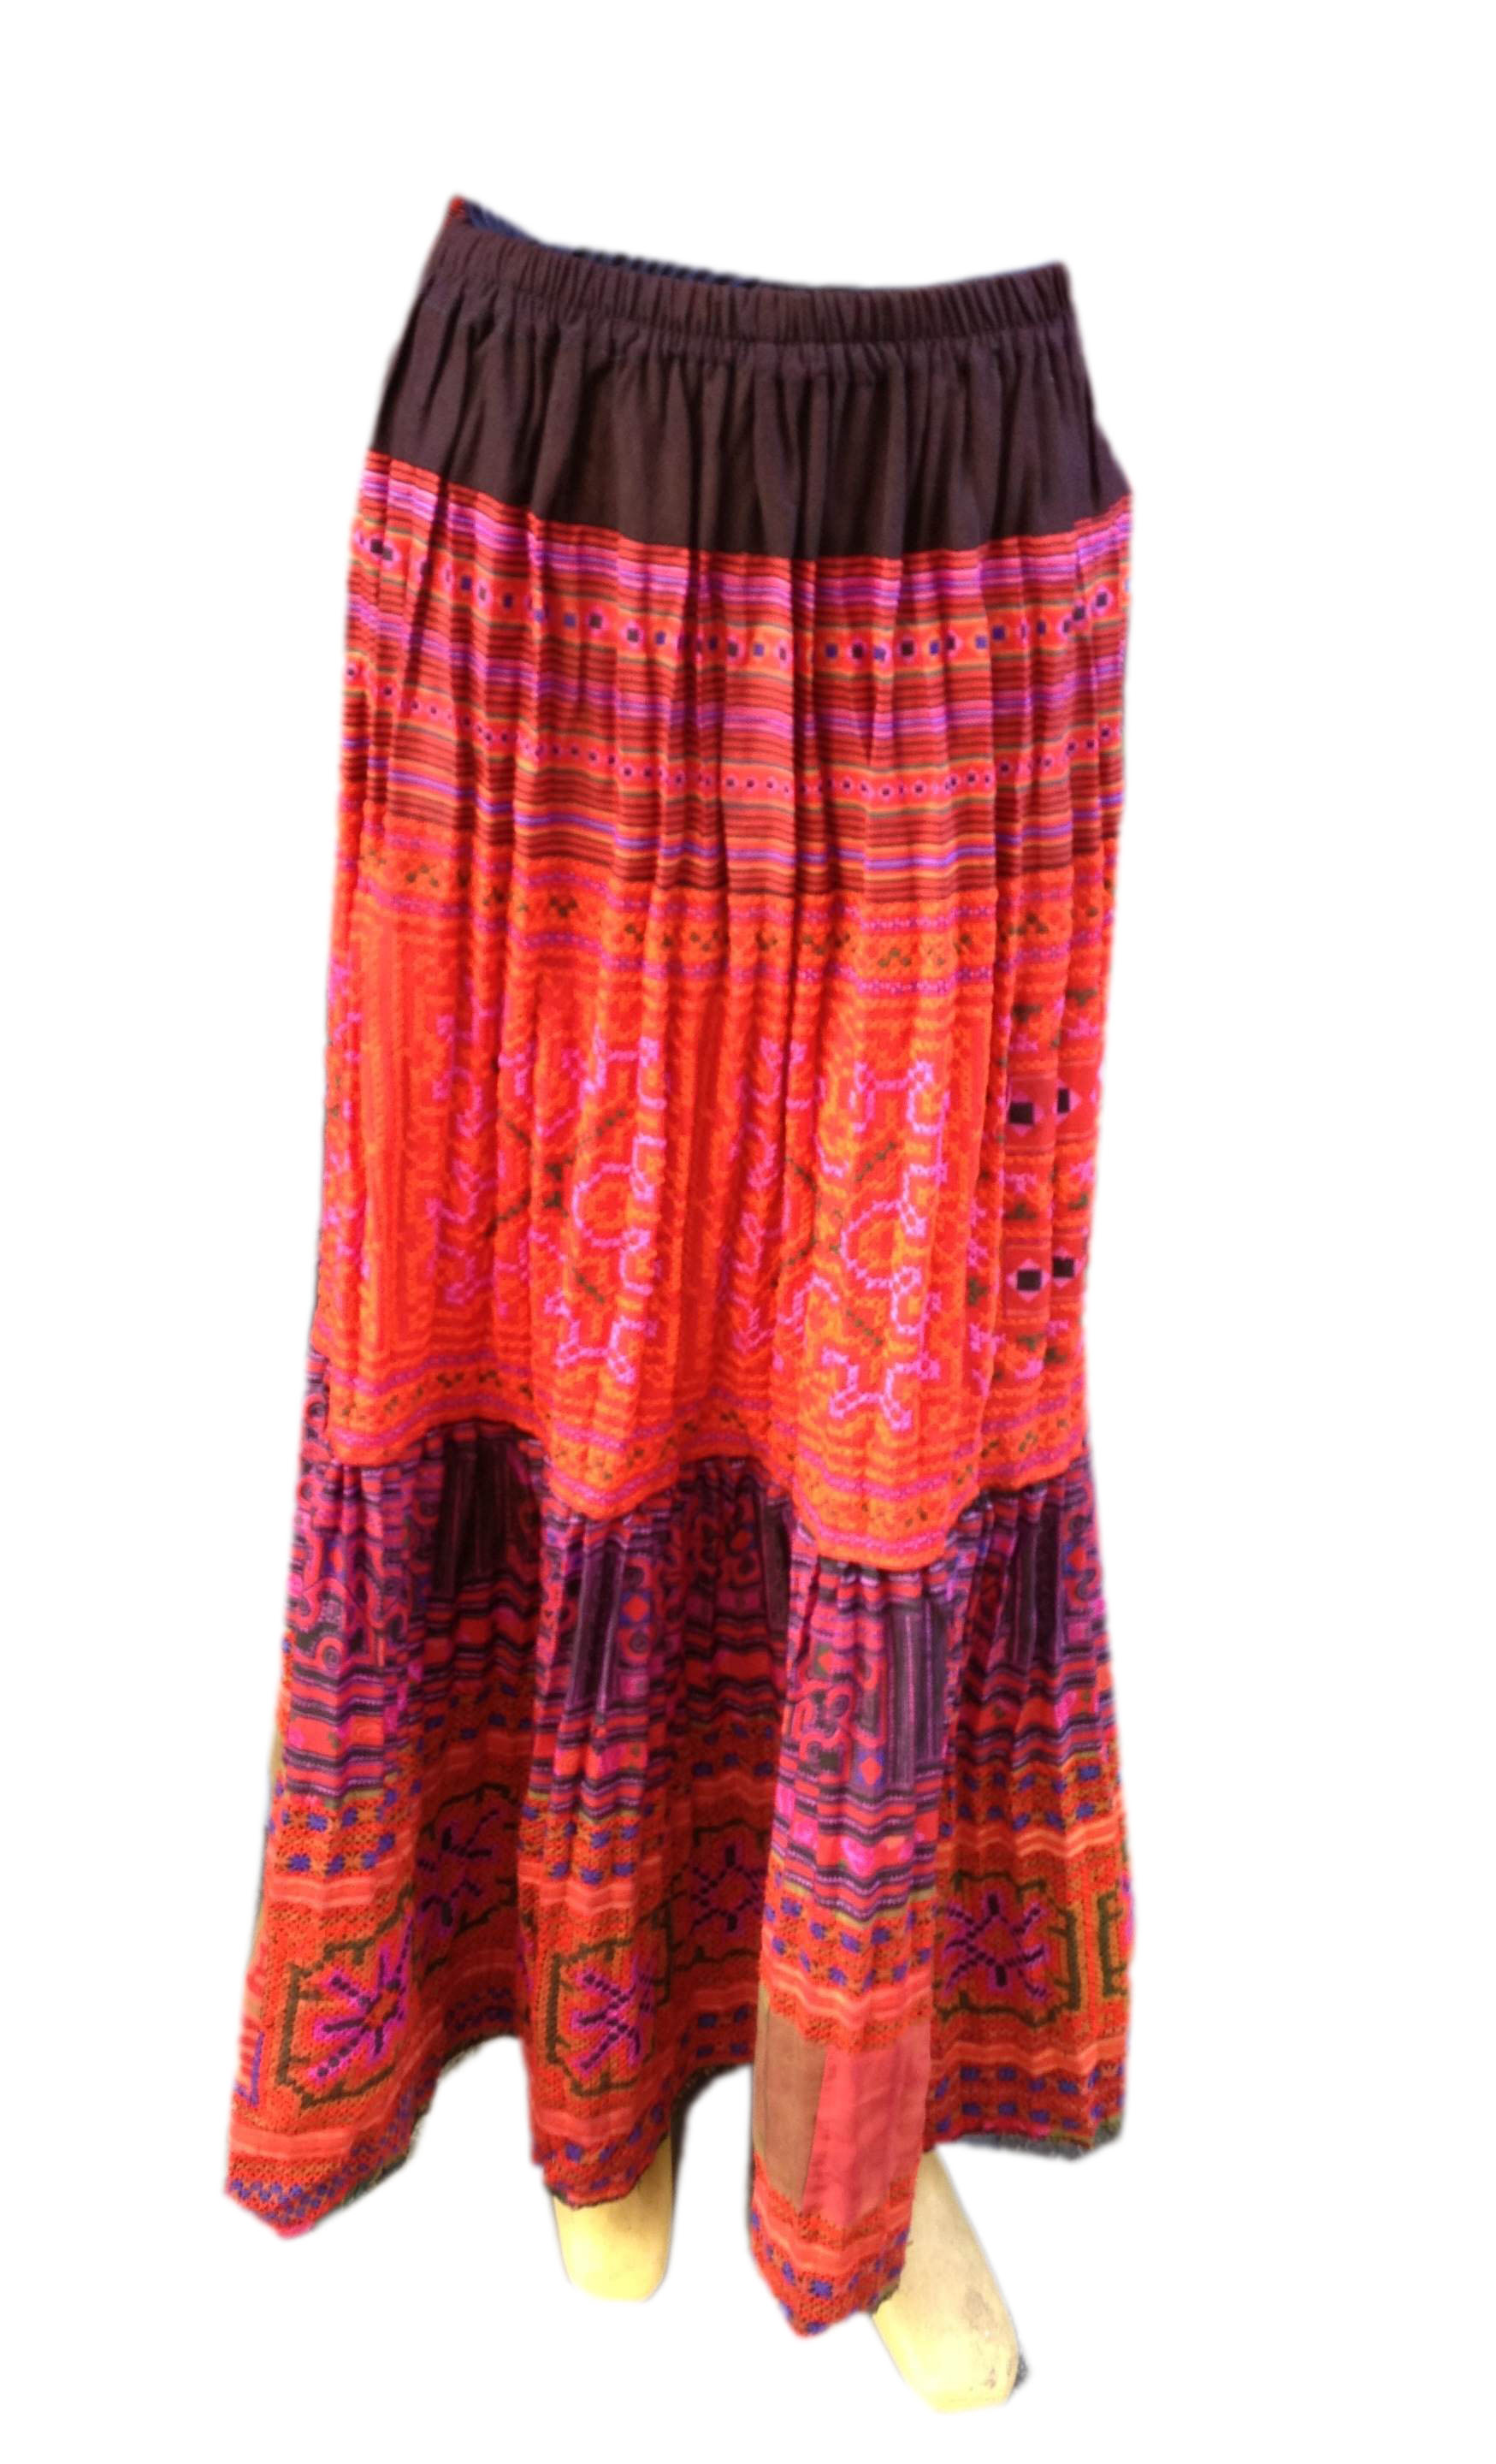 tribalStylelongDress_1